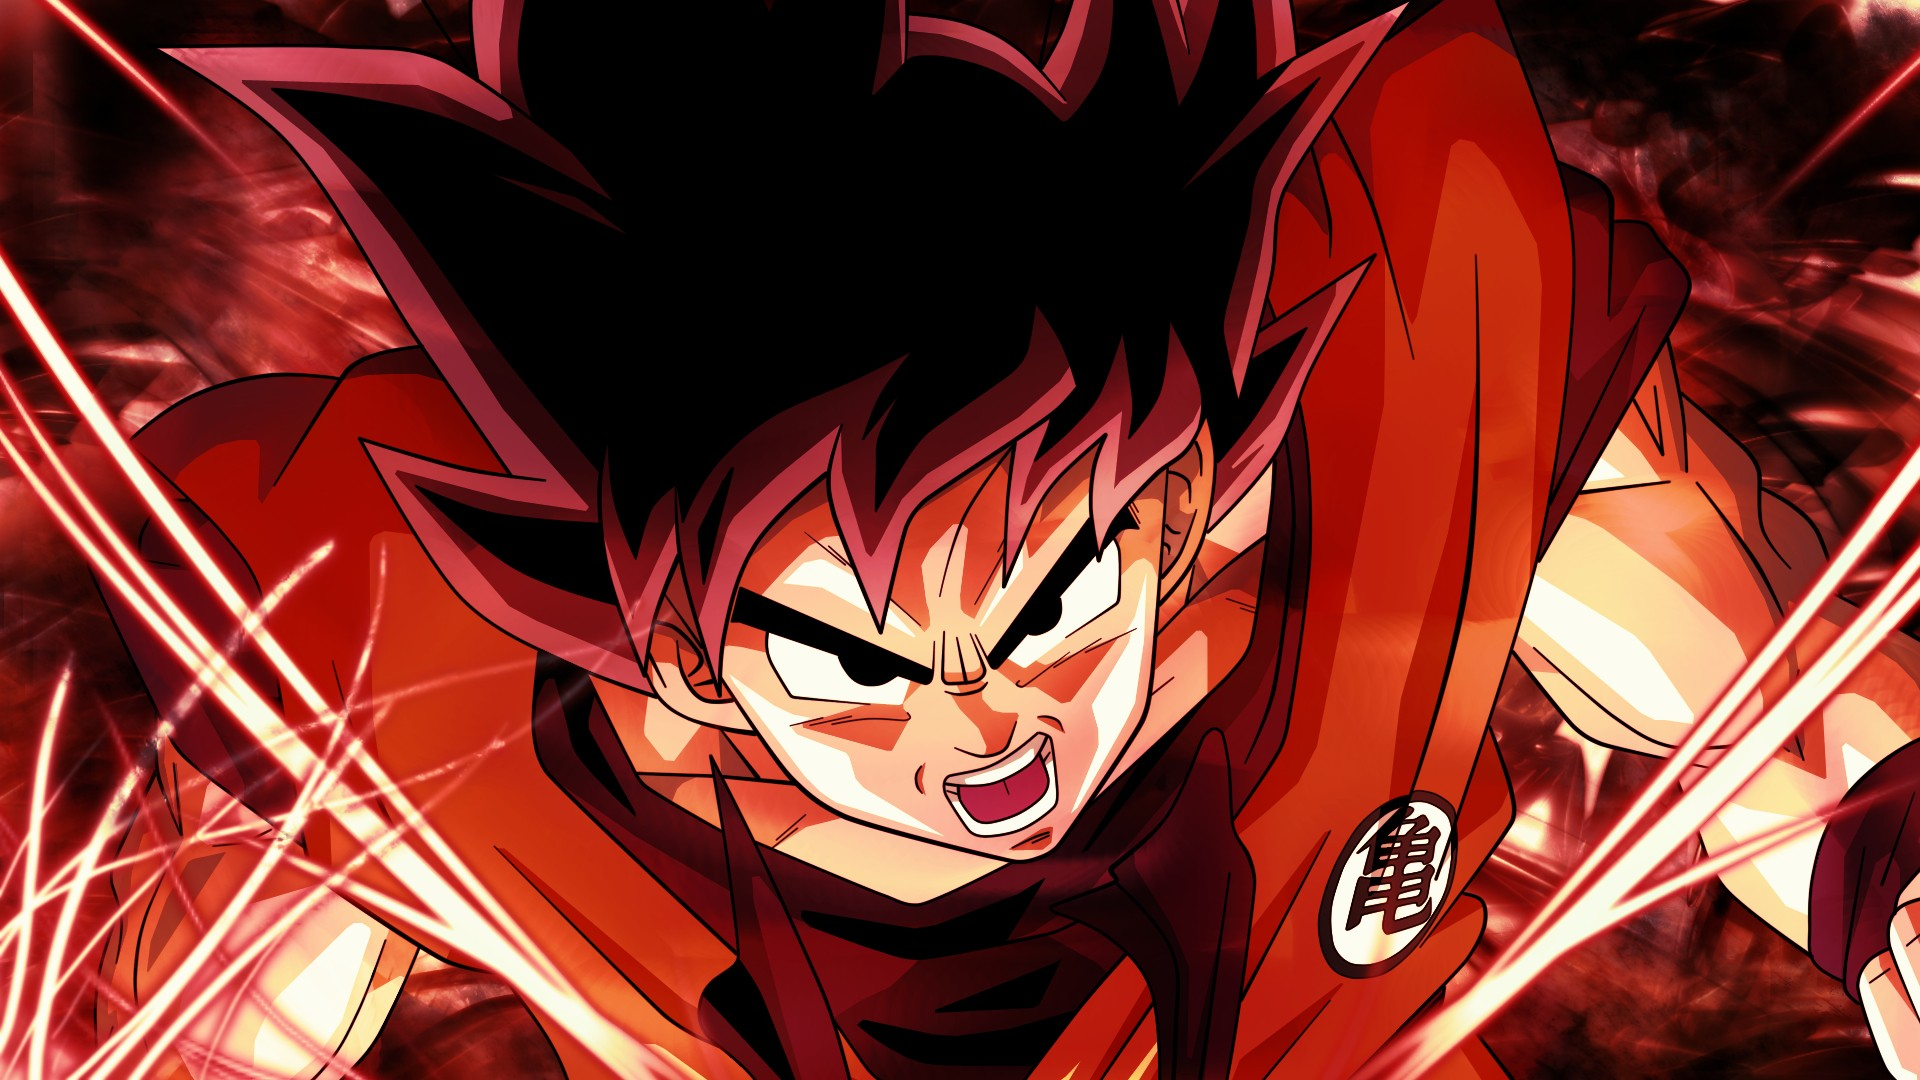 Goku Wallpaper Download Free Awesome Full Hd Backgrounds For